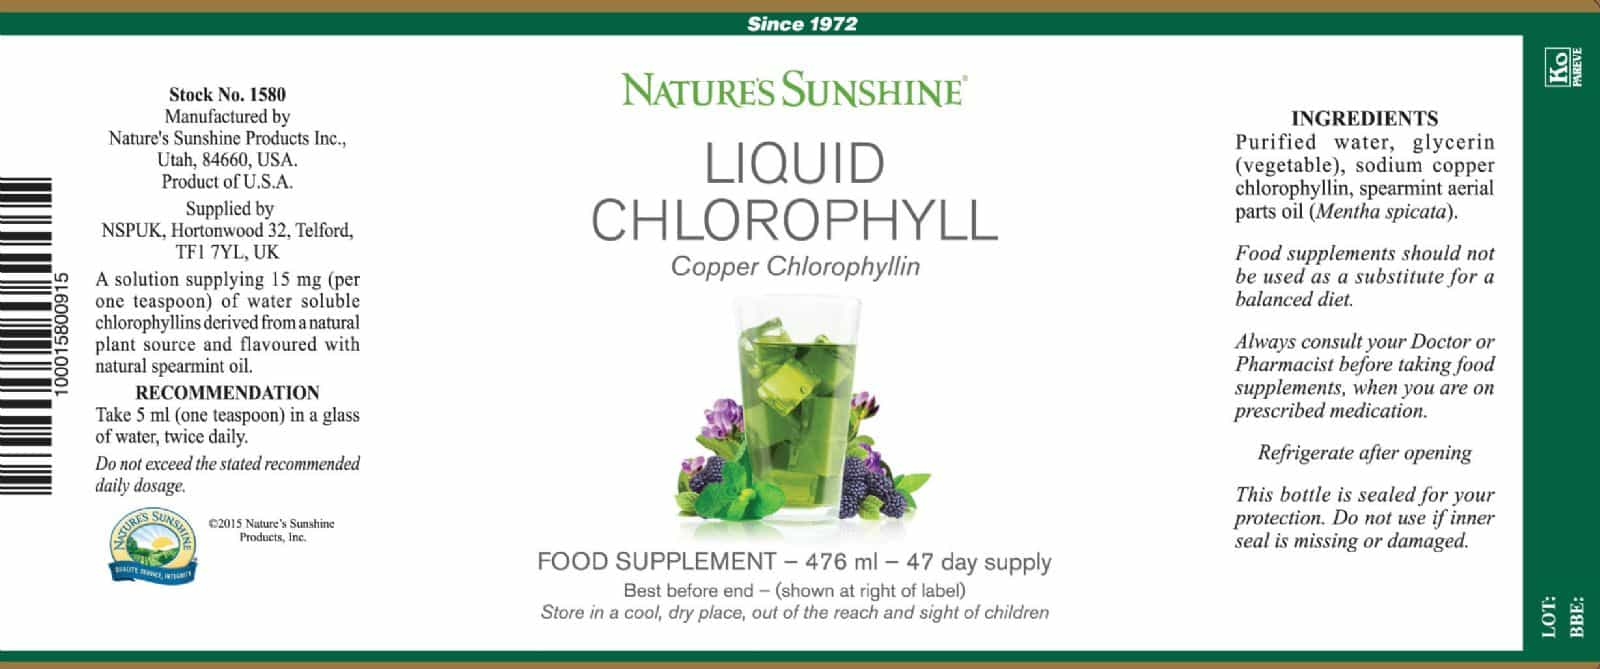 Liquid Chlorophyll 1580 new label 1_9_15